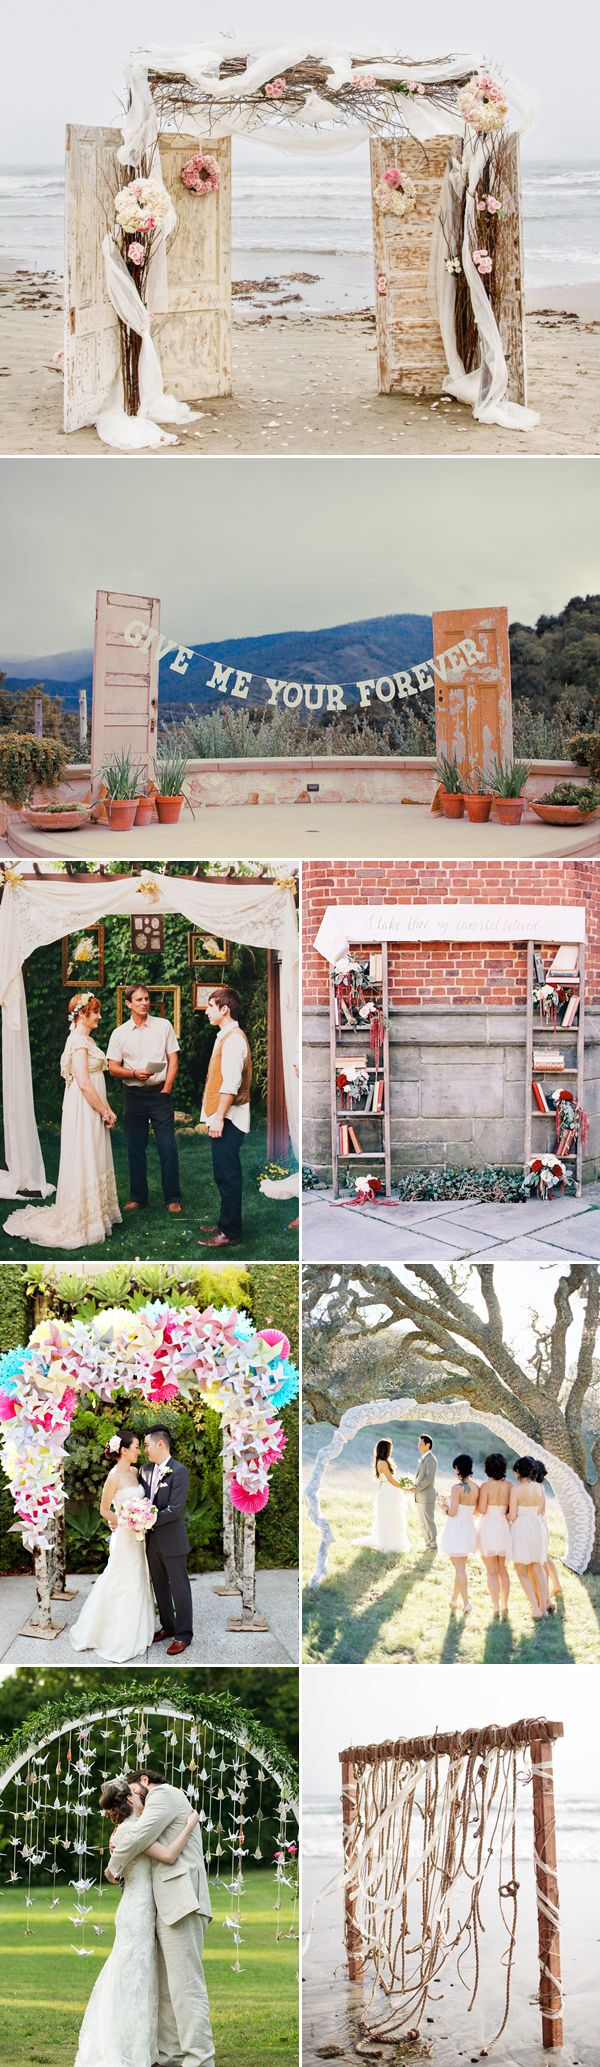 50 Beautiful Wedding Arch Decoration Ideas - Creative and Unique